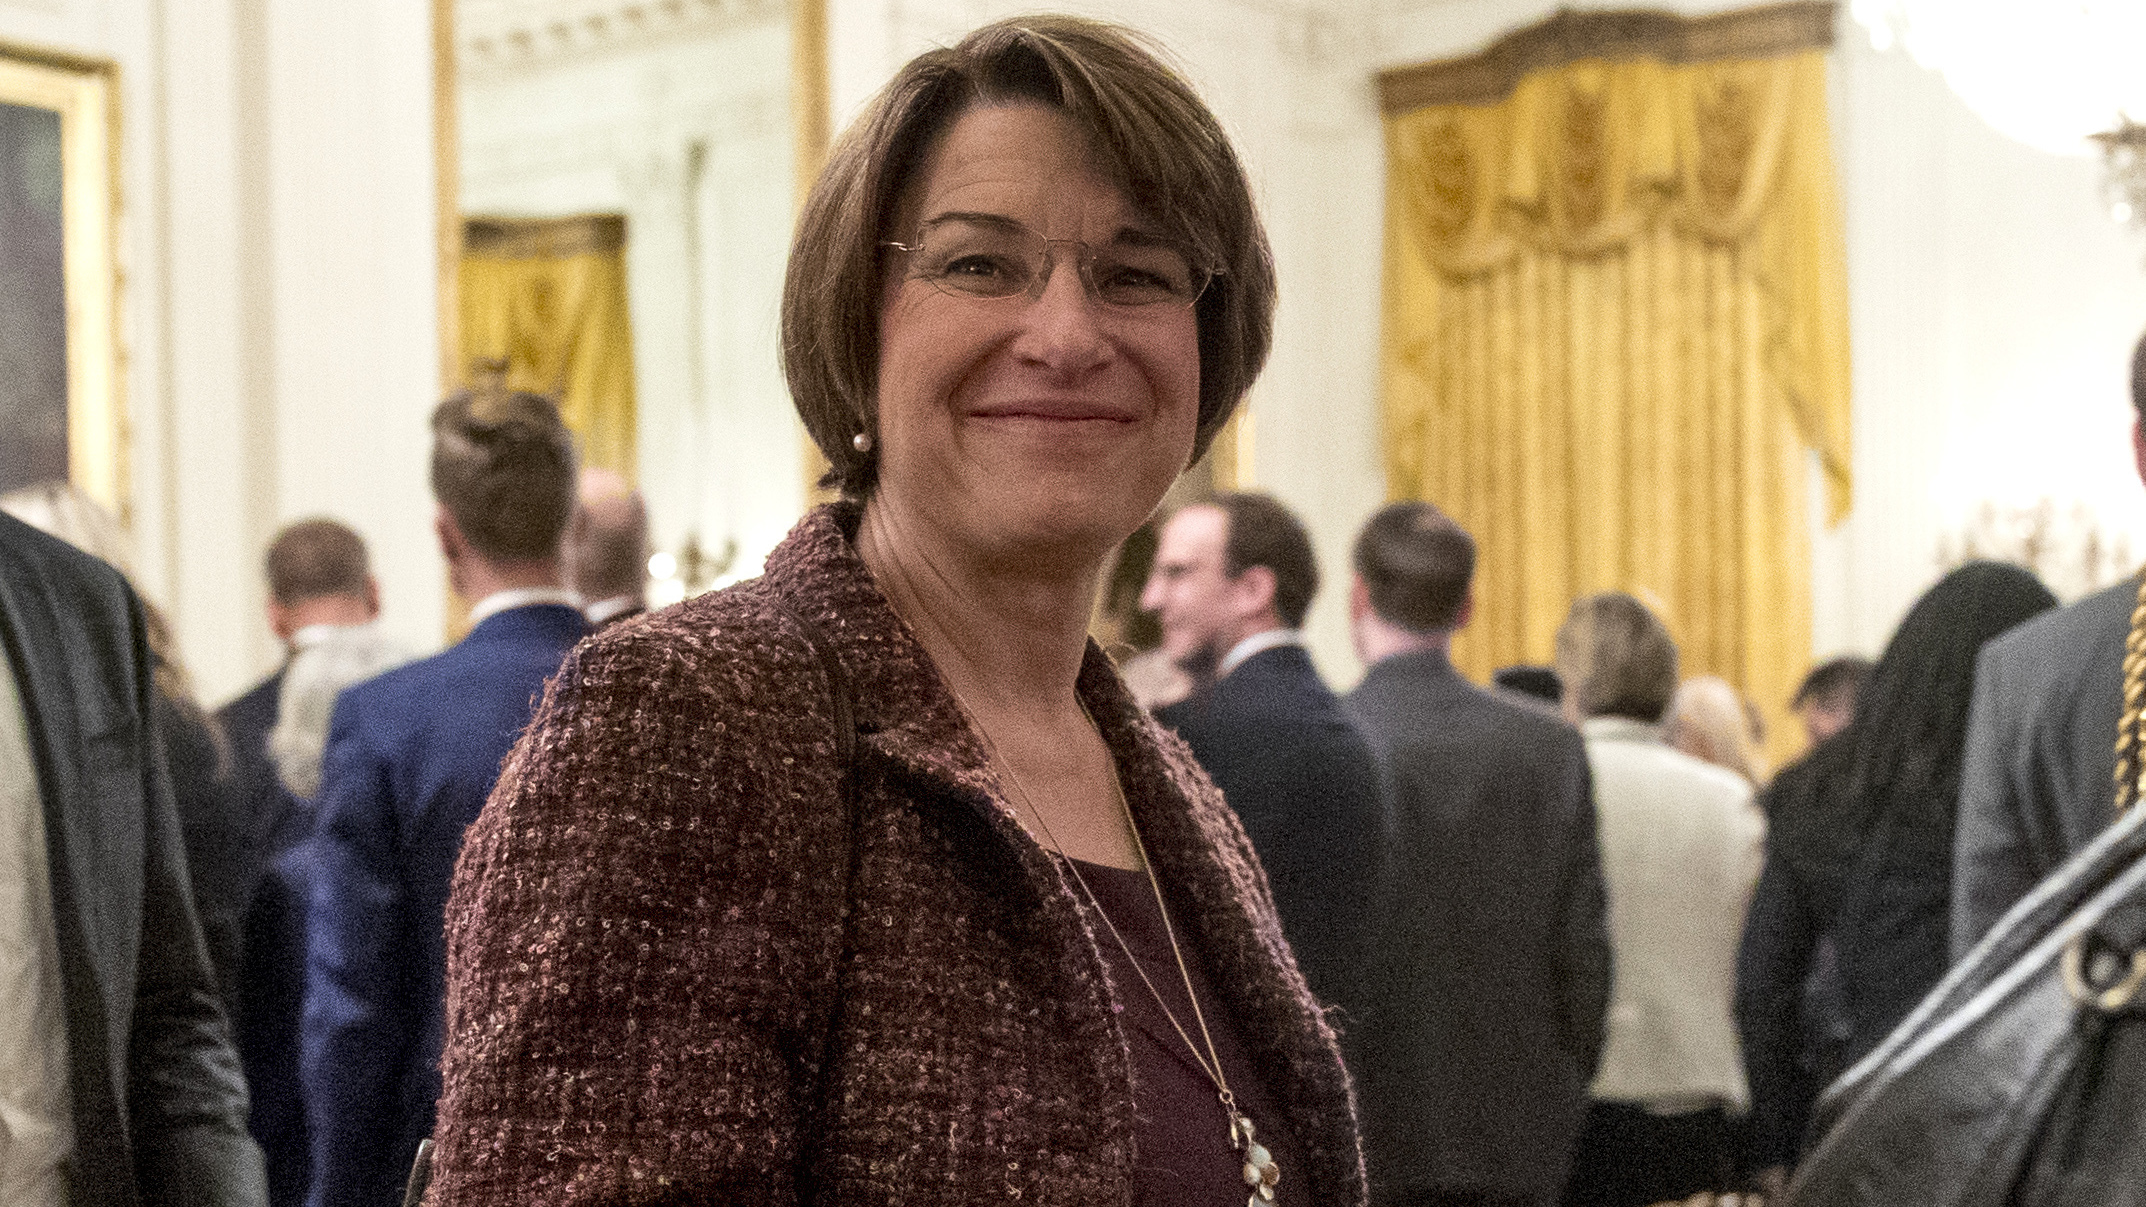 Sen. Amy Klobuchar D-Minn. departs following a Medal of Freedom ceremony in the East Room of the White House. Andrew Harnik  AP